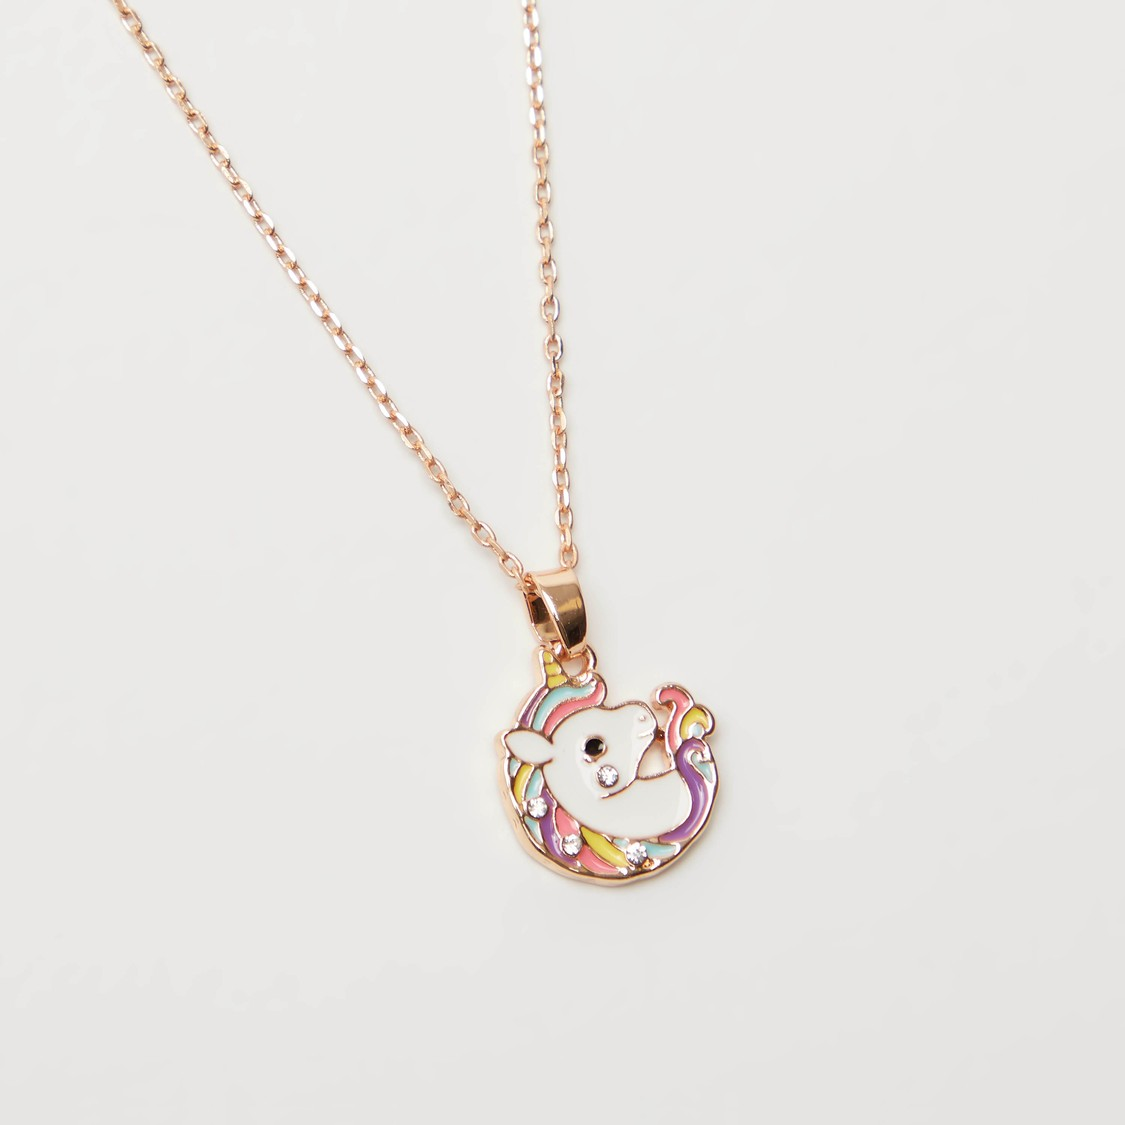 Unicorn Pendant Necklace with Earrings Set